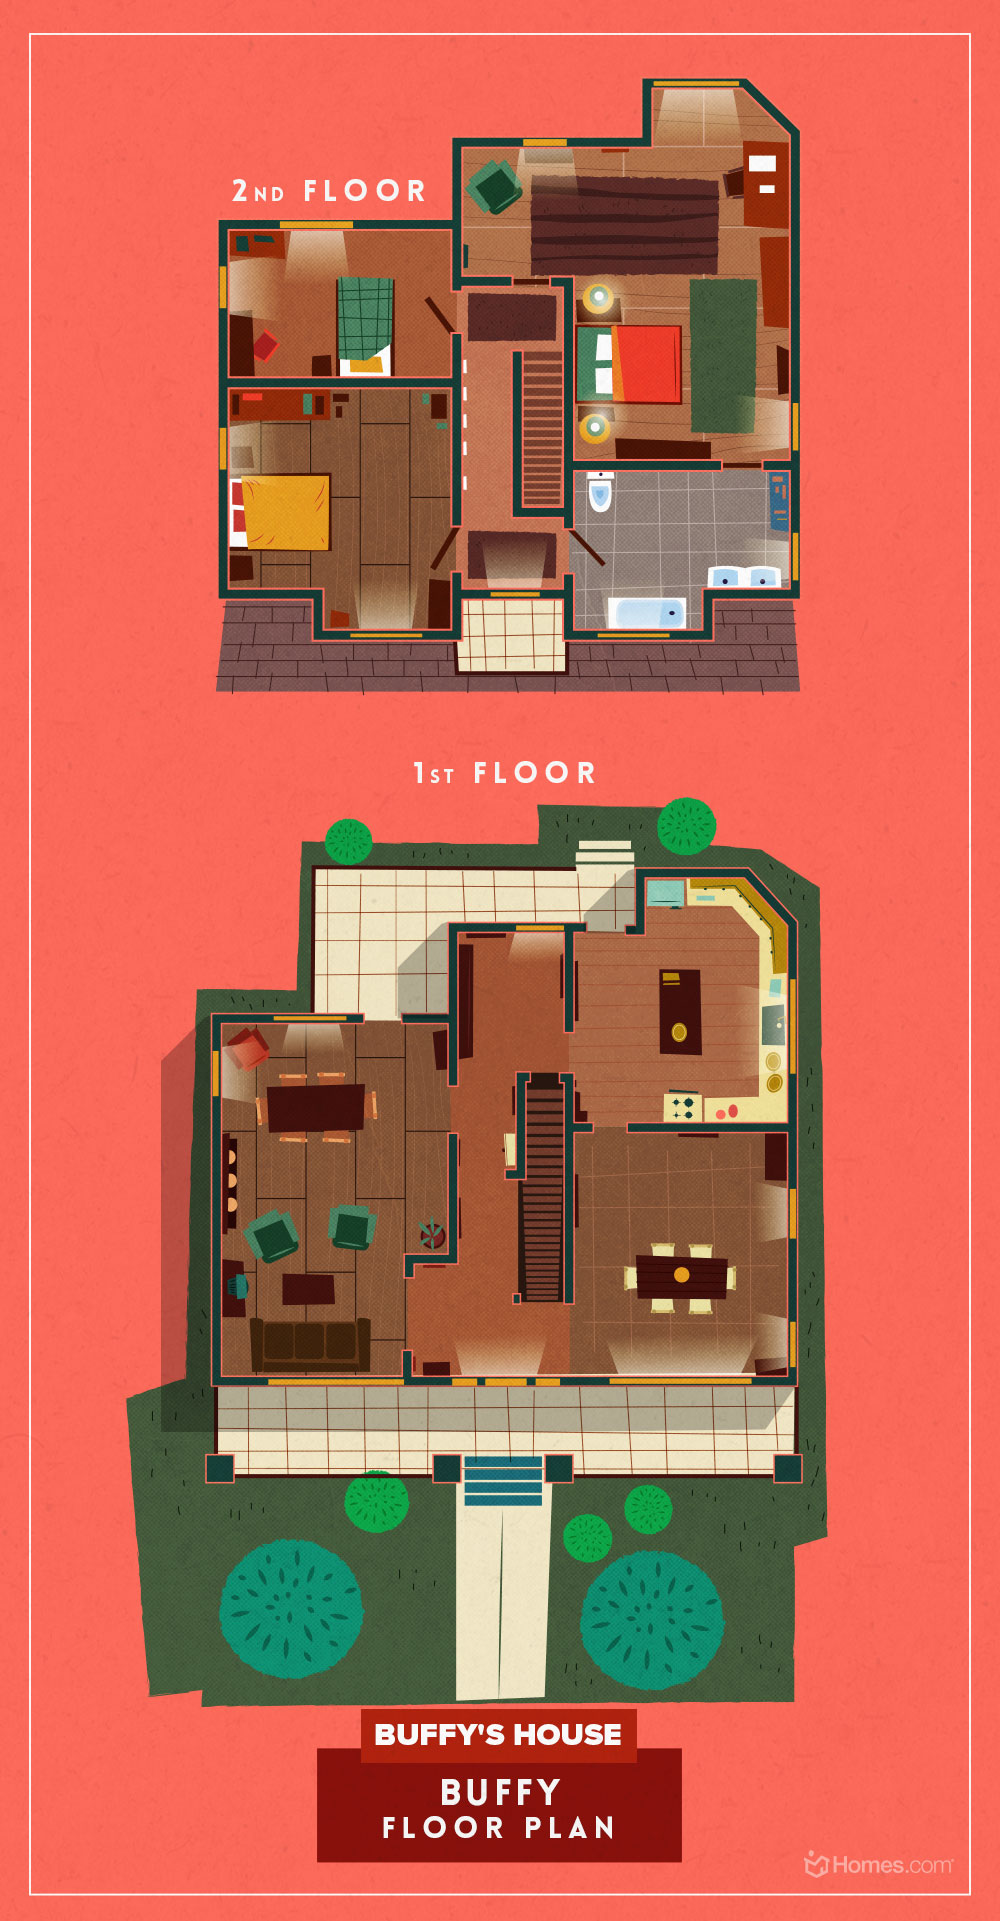 Floor Plans Of Popular TV Show Homes - Buffy